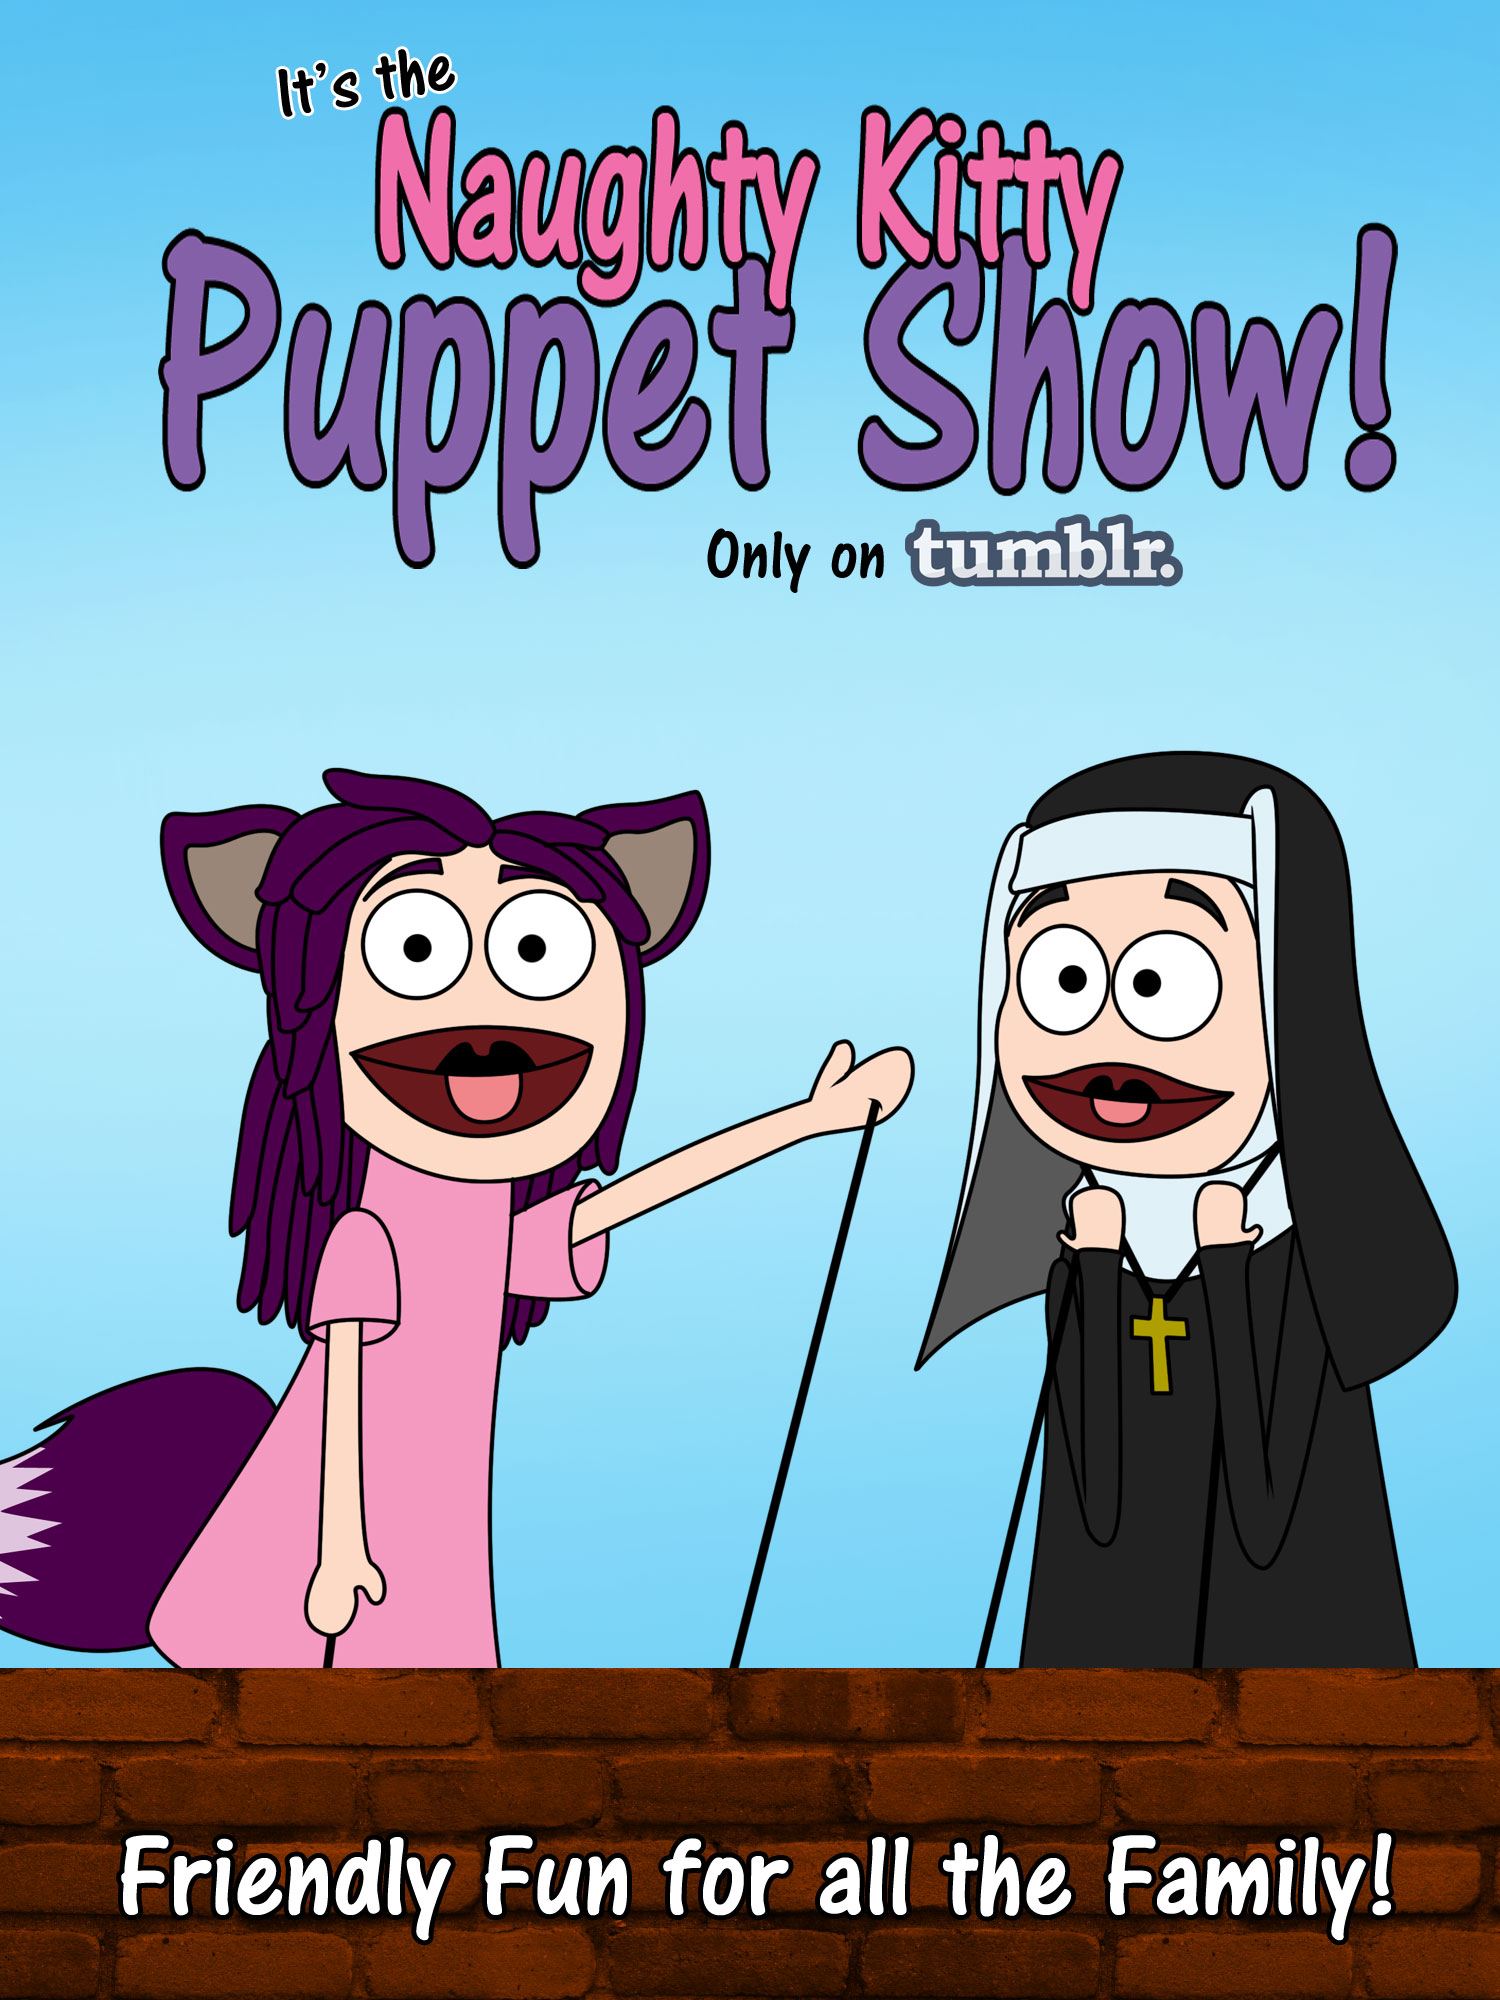 The Naughty Kitty Puppet Show!